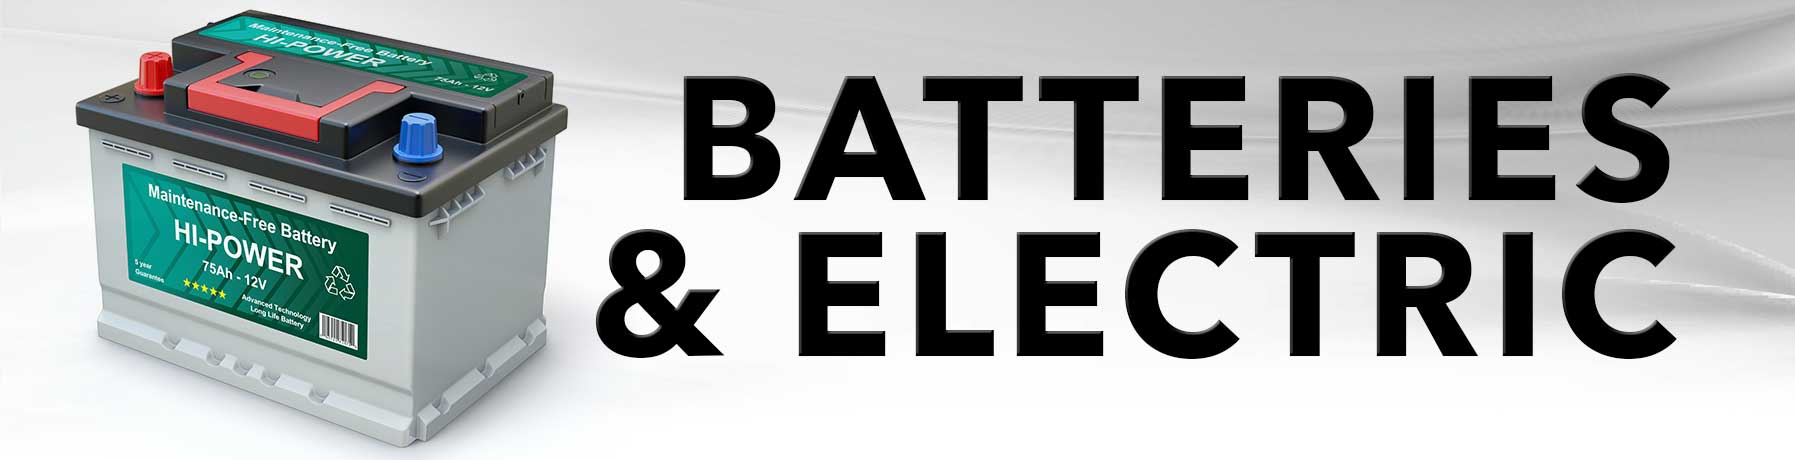 Batteries and Electric maintenance banner image with picture of battery